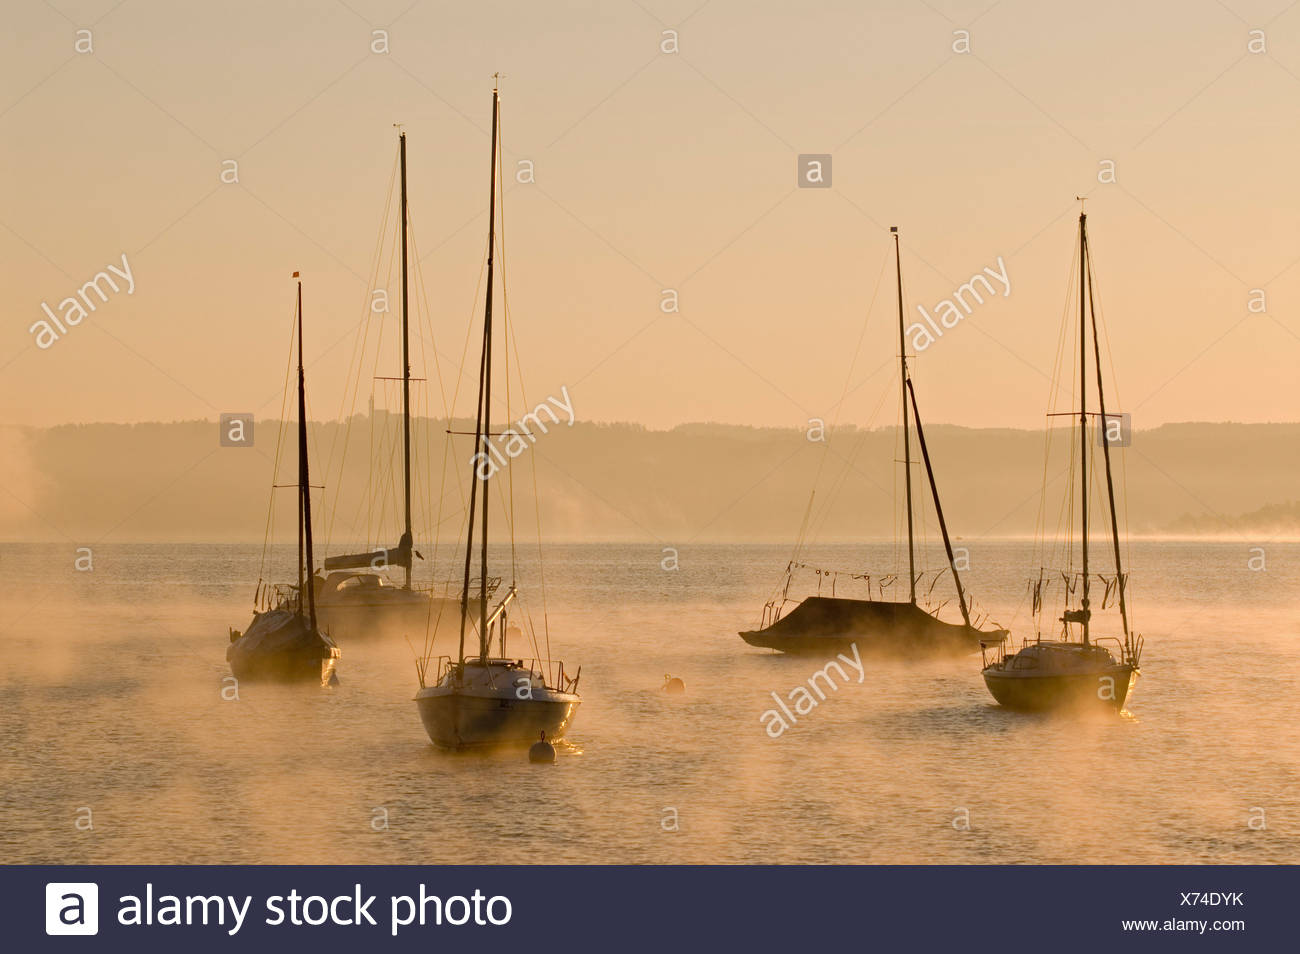 Sailing boats and low morning fog over Ammersee lake at Utting, Bavaria, Germany, Europe Stock Photo